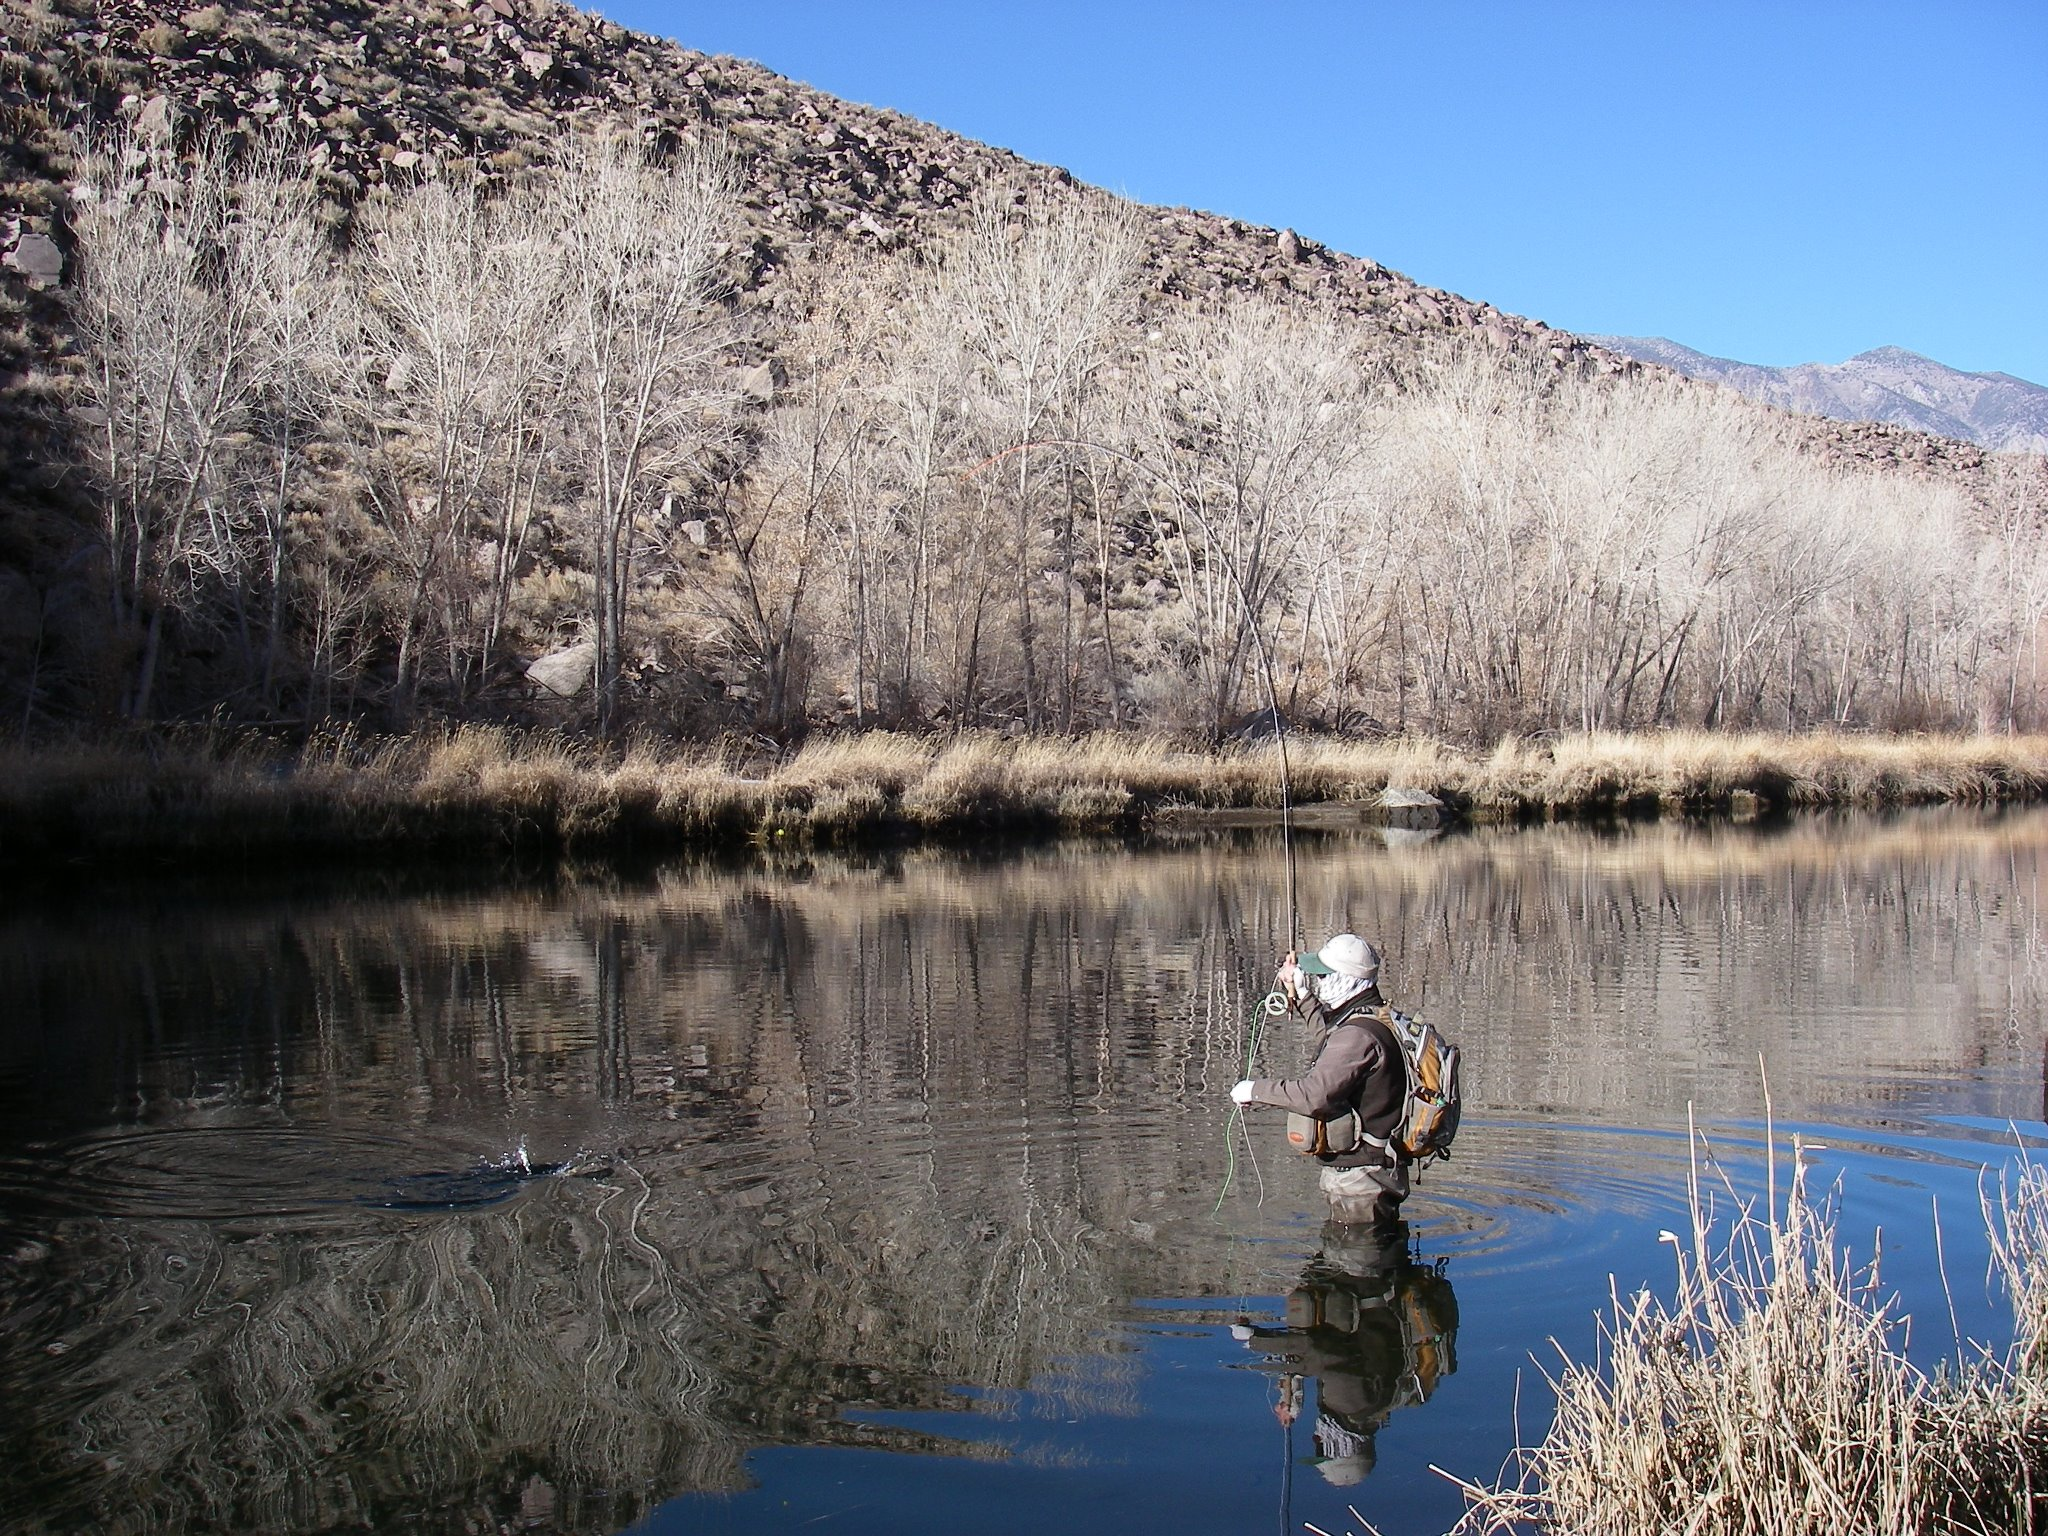 A fly fisherman casting while wading in Pleasant Valley Reservoir.